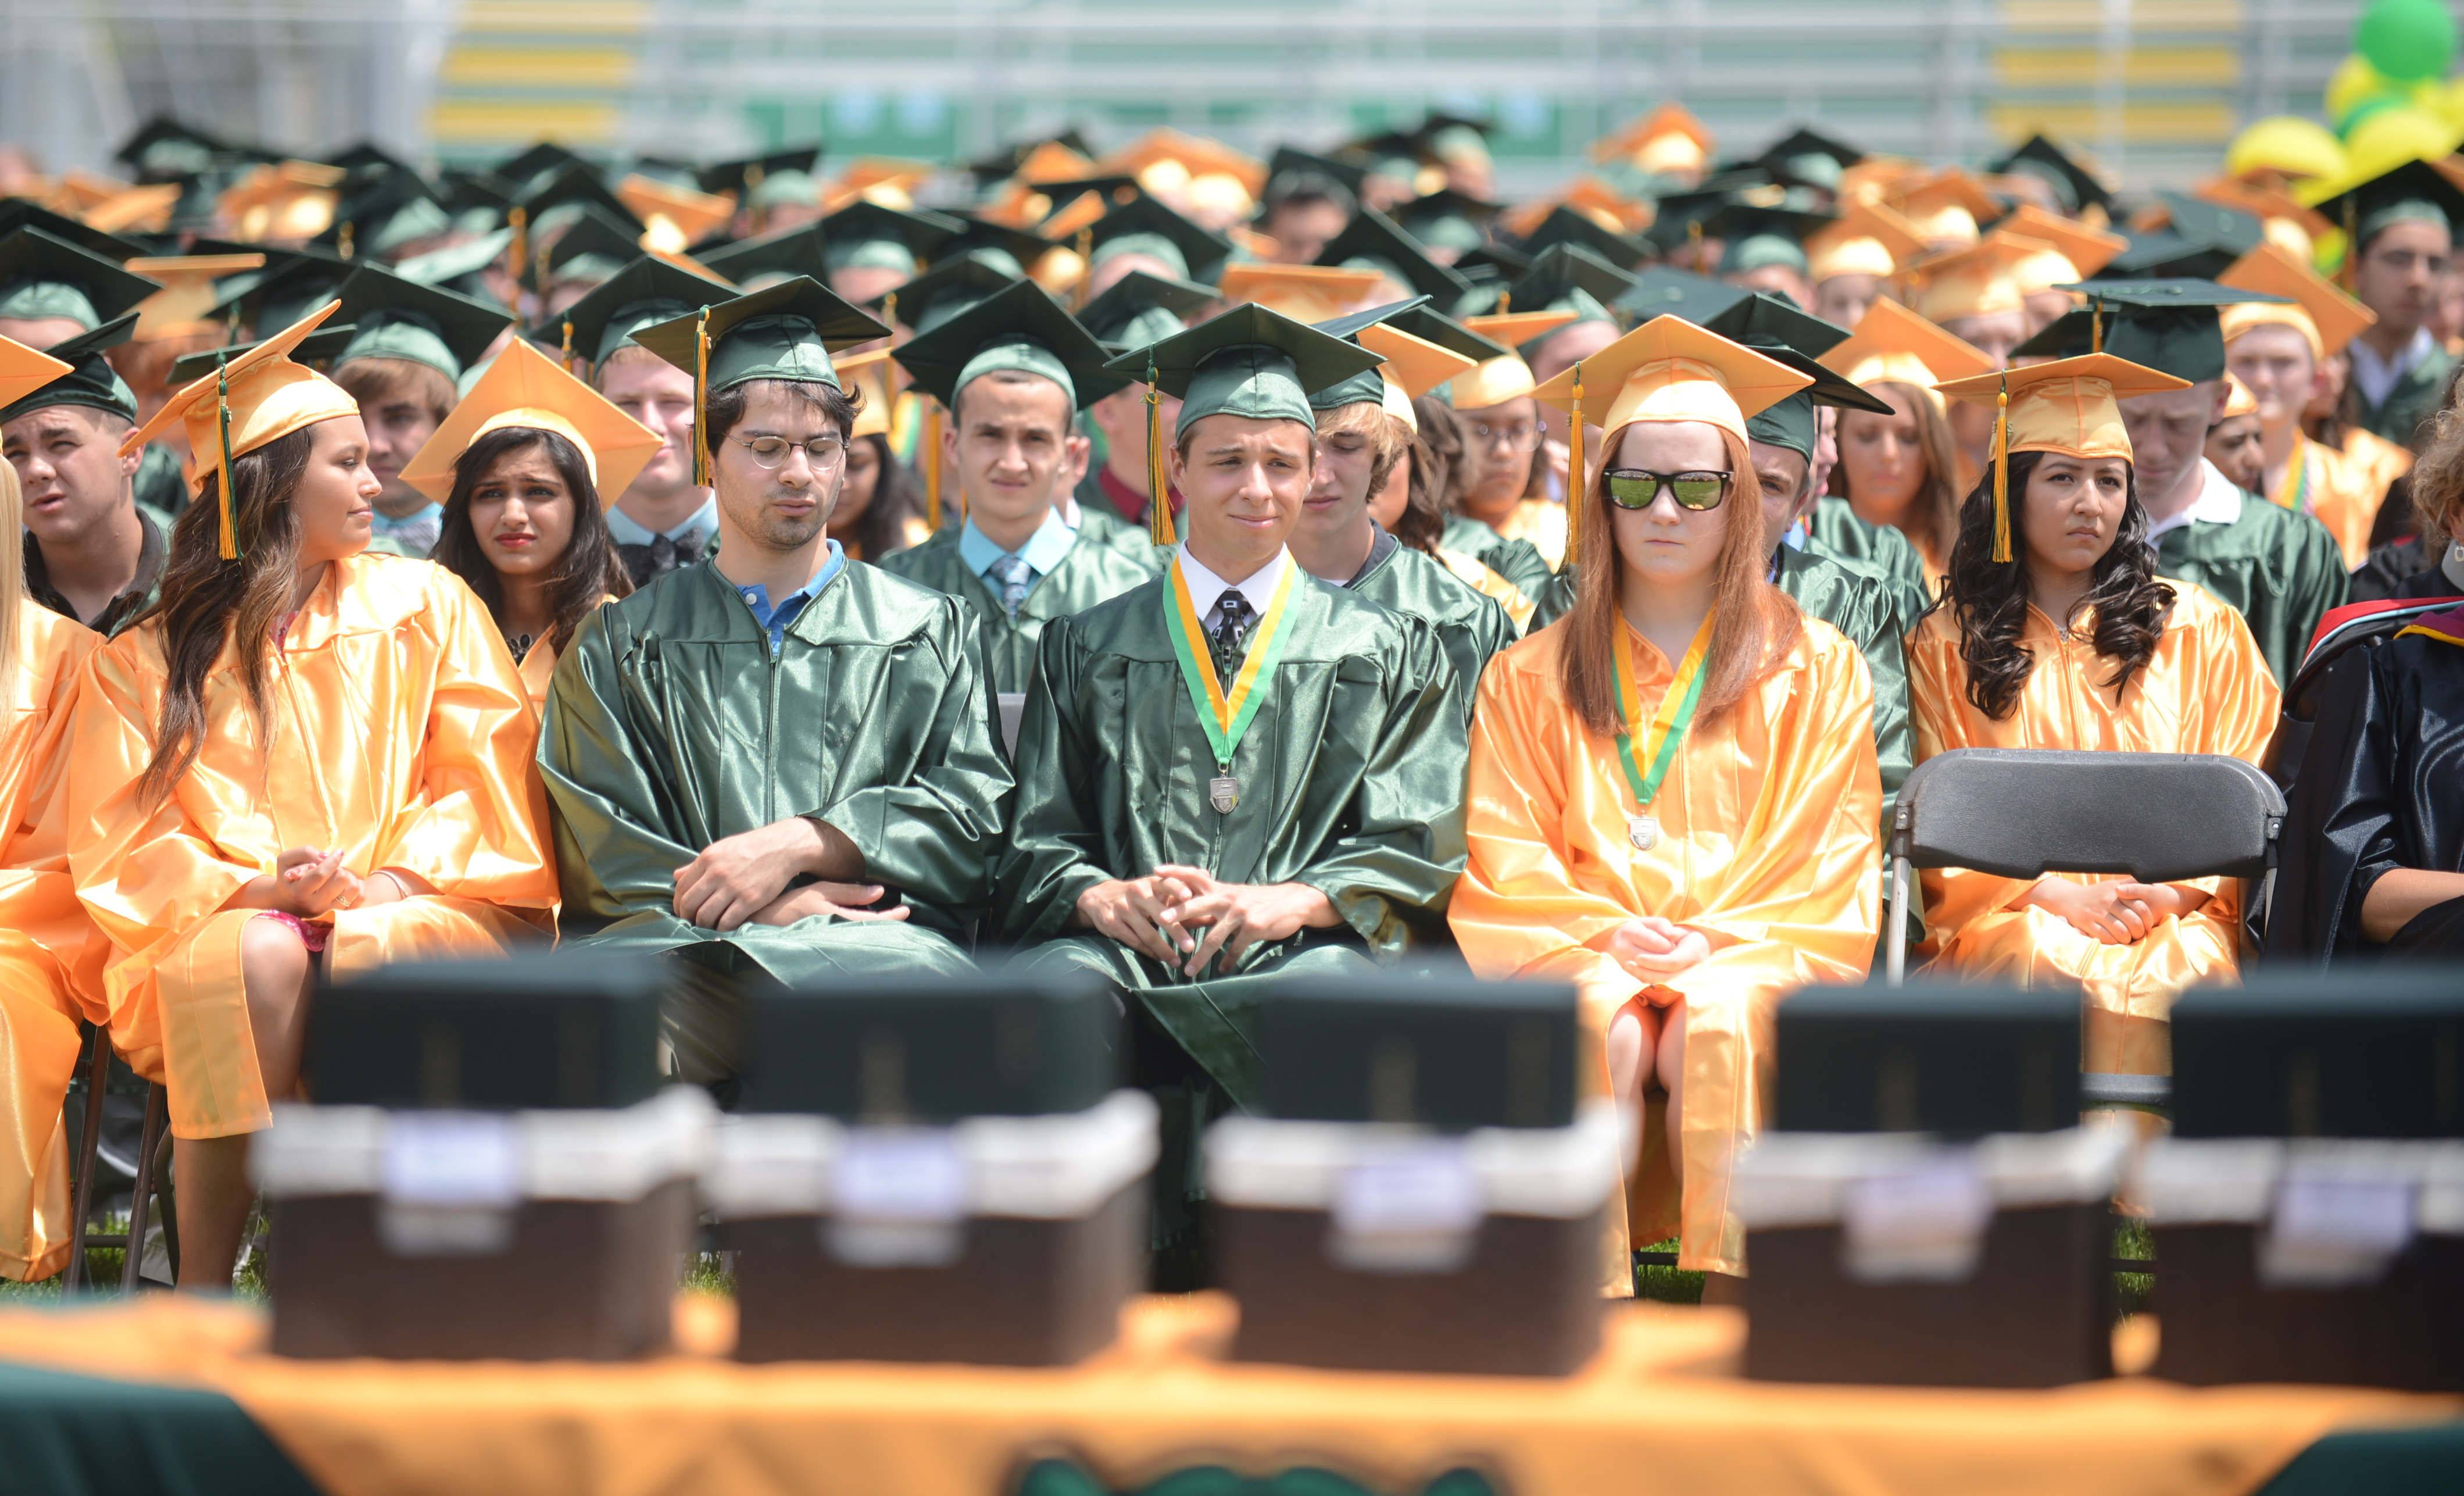 Images from the Crystal Lake South High School graduation ceremony on Saturday, May 31st, at the school.